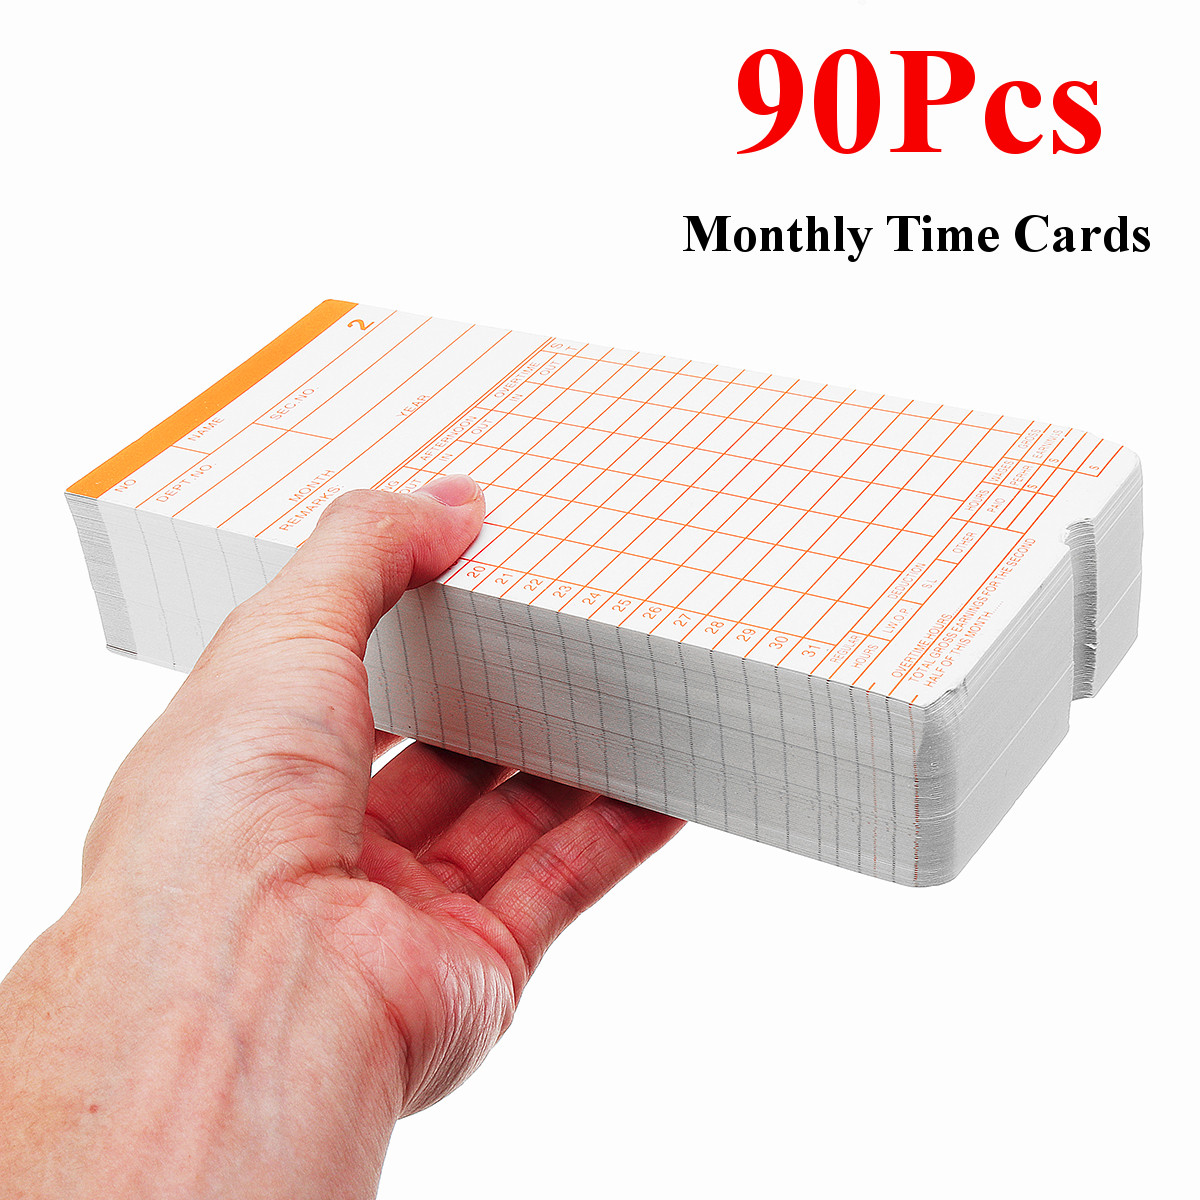 90Pcs/lot Office Use Employee Electronic Punch Card Clock Paper Time Attendace Clock DIY Kit Digital Time Clock Card